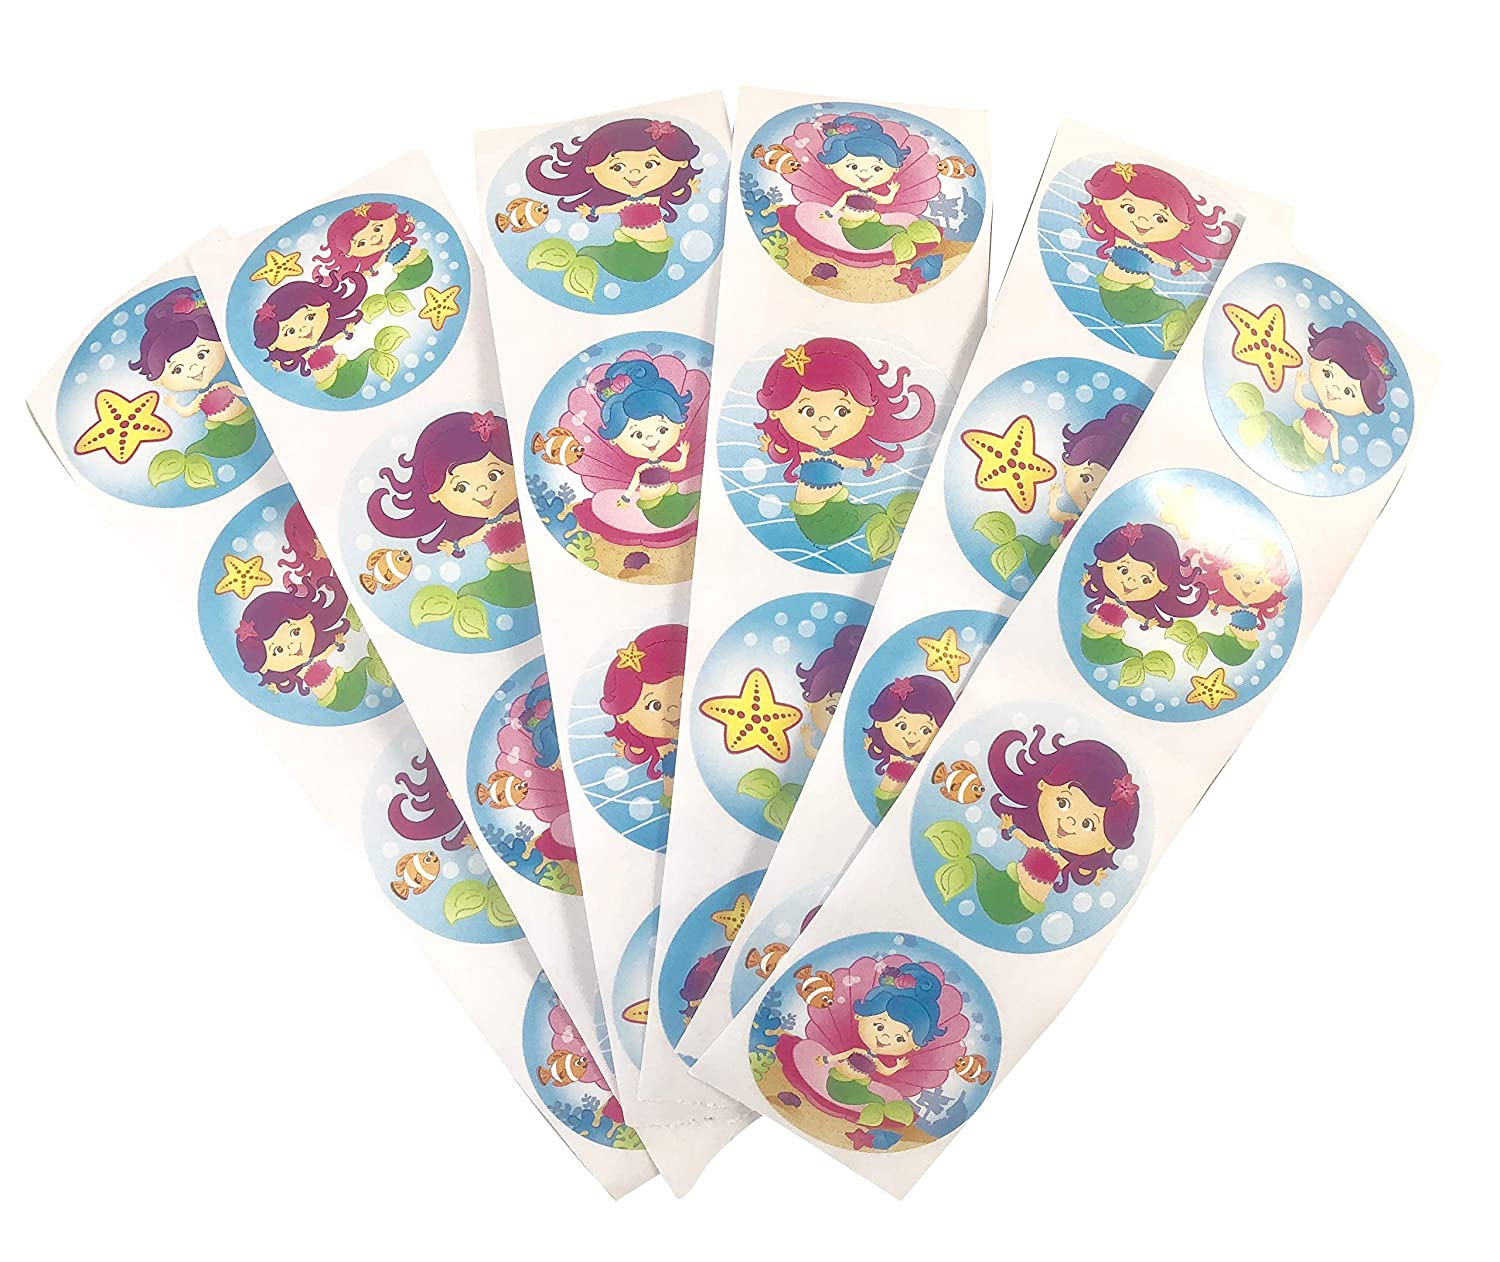 Mermaid Pencils Stickers Mermaid Beach Ball Glitter Note Pad Mermaid Birthday Party Favors and Supplies Complete Under the Sea kit for 6 Little Guests Including Bag Mermaid Slap Bracelet and Bubbles Hippo Entertainment